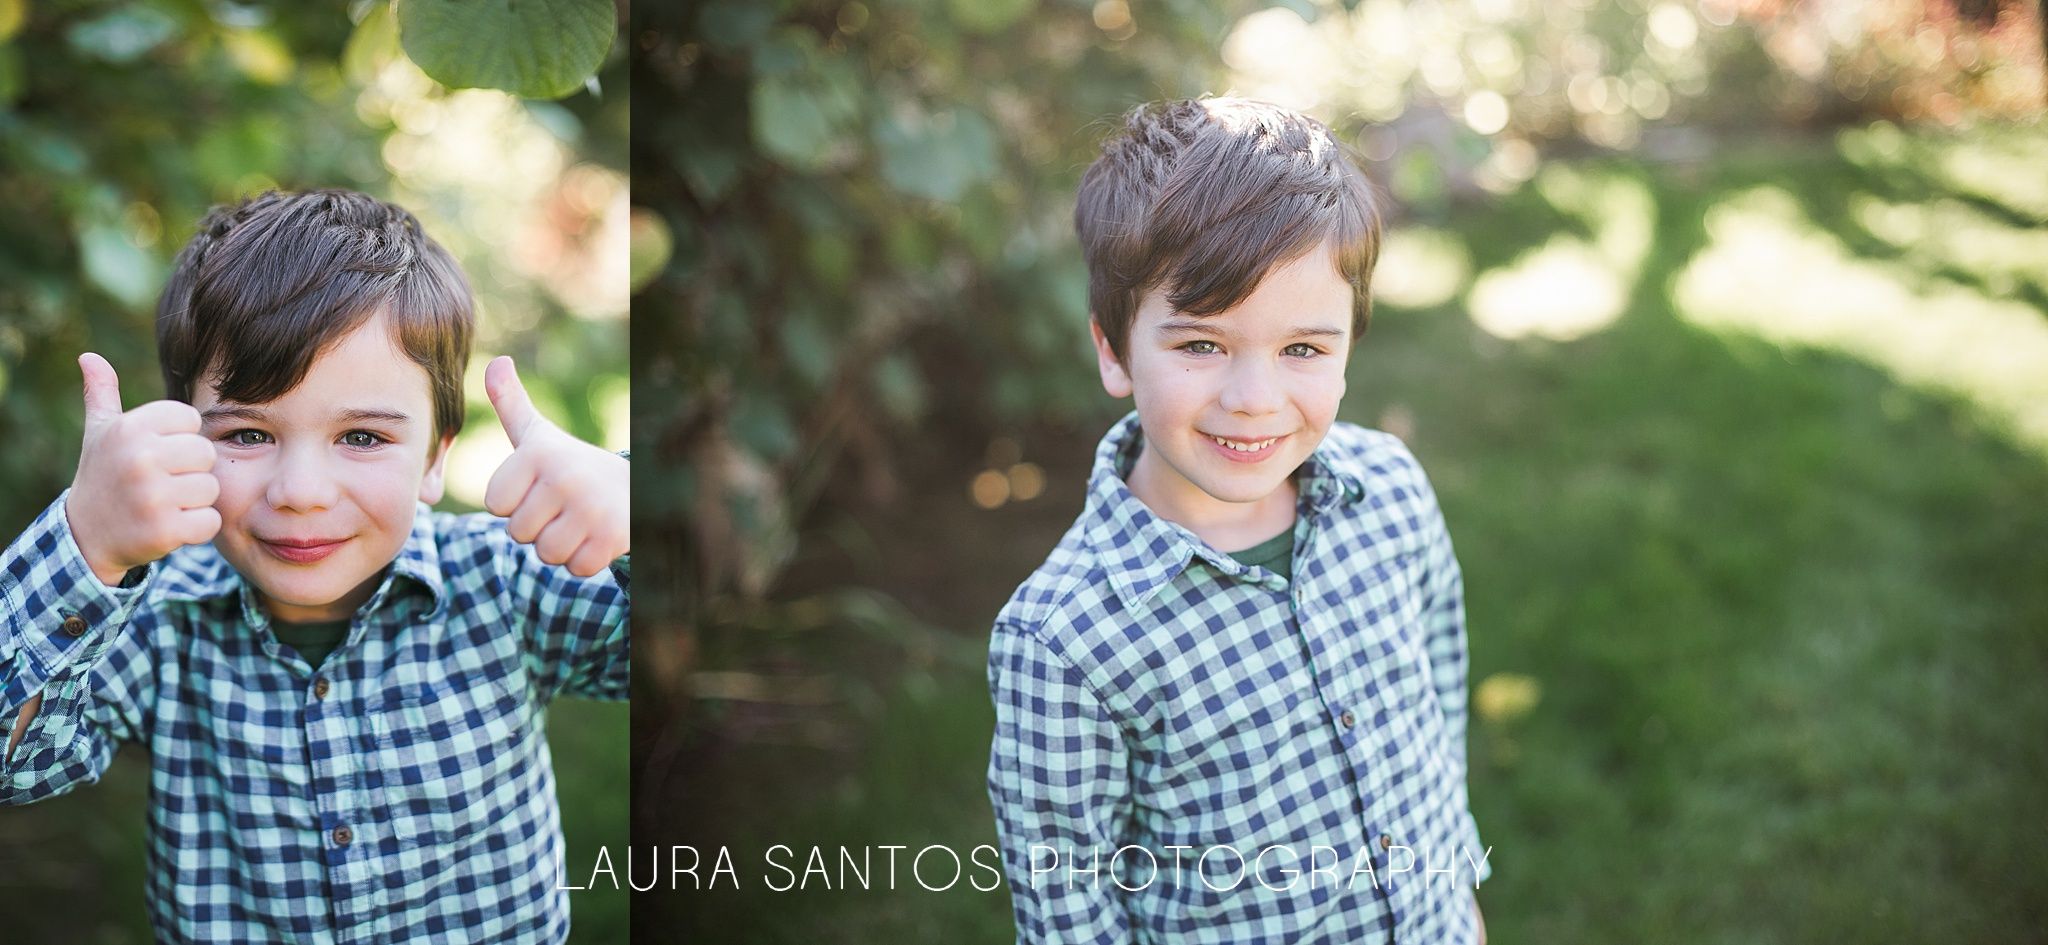 Laura Santos Photography Portland Oregon Family Photographer_0828.jpg